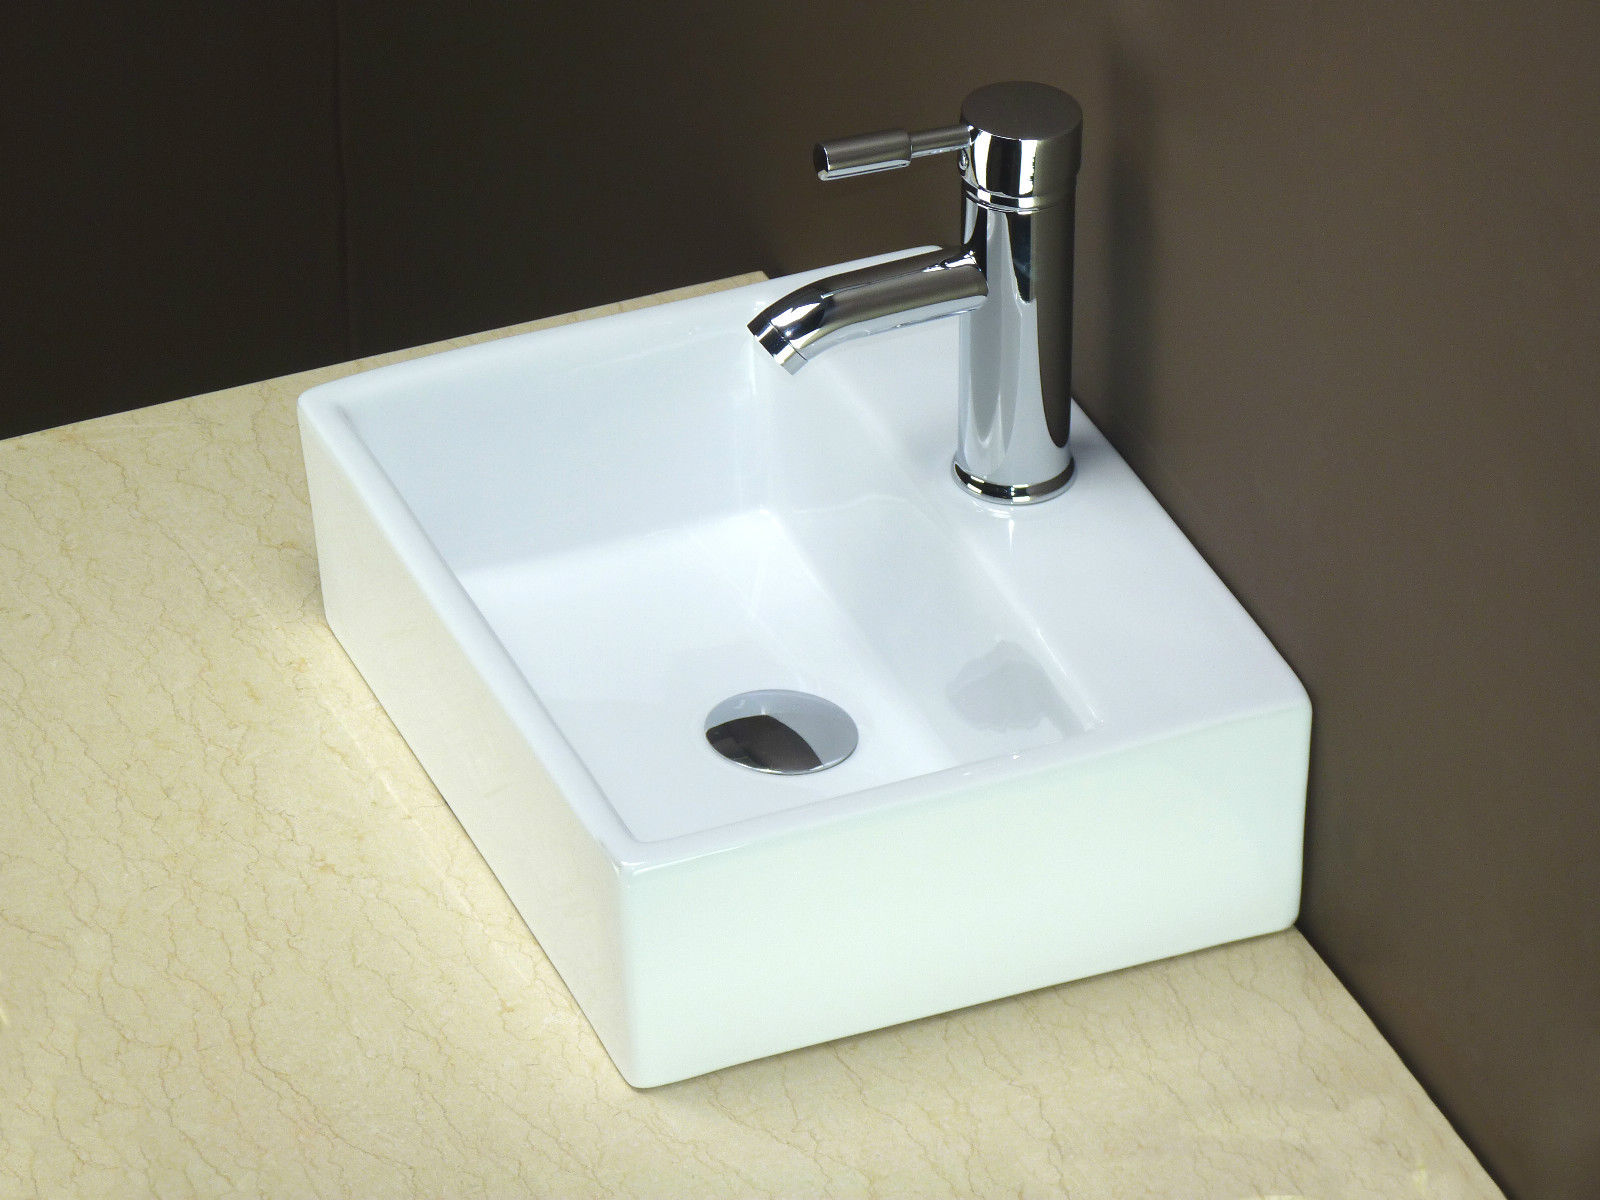 bathroom countertop oval ceramic basin sink pictures 03